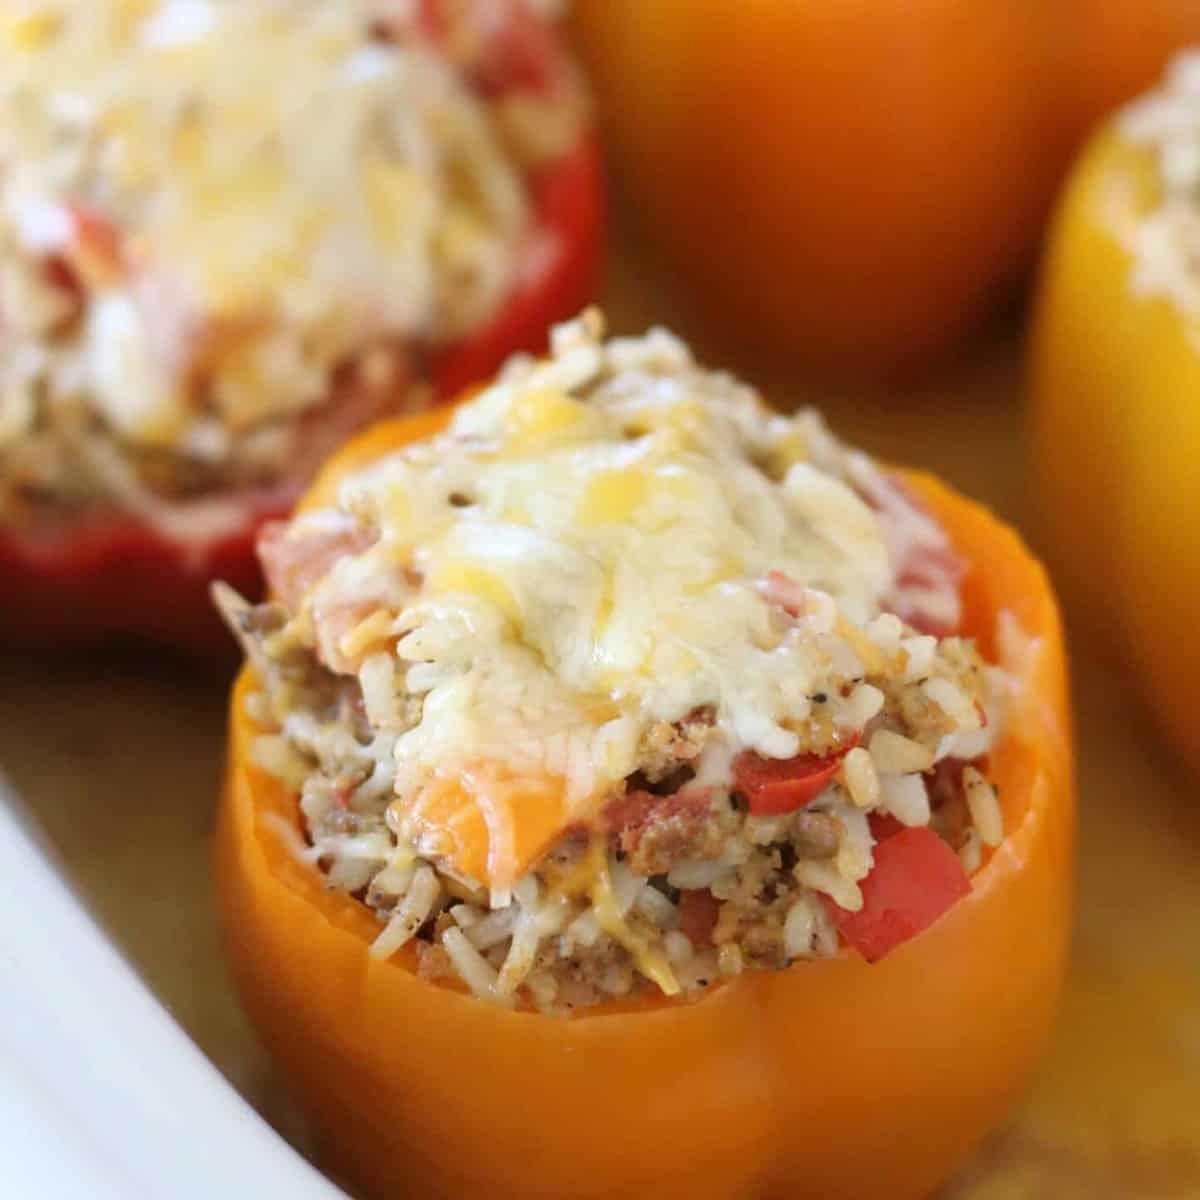 bell peppers, lean ground beef, cheese, pimiento cheese, Rotel